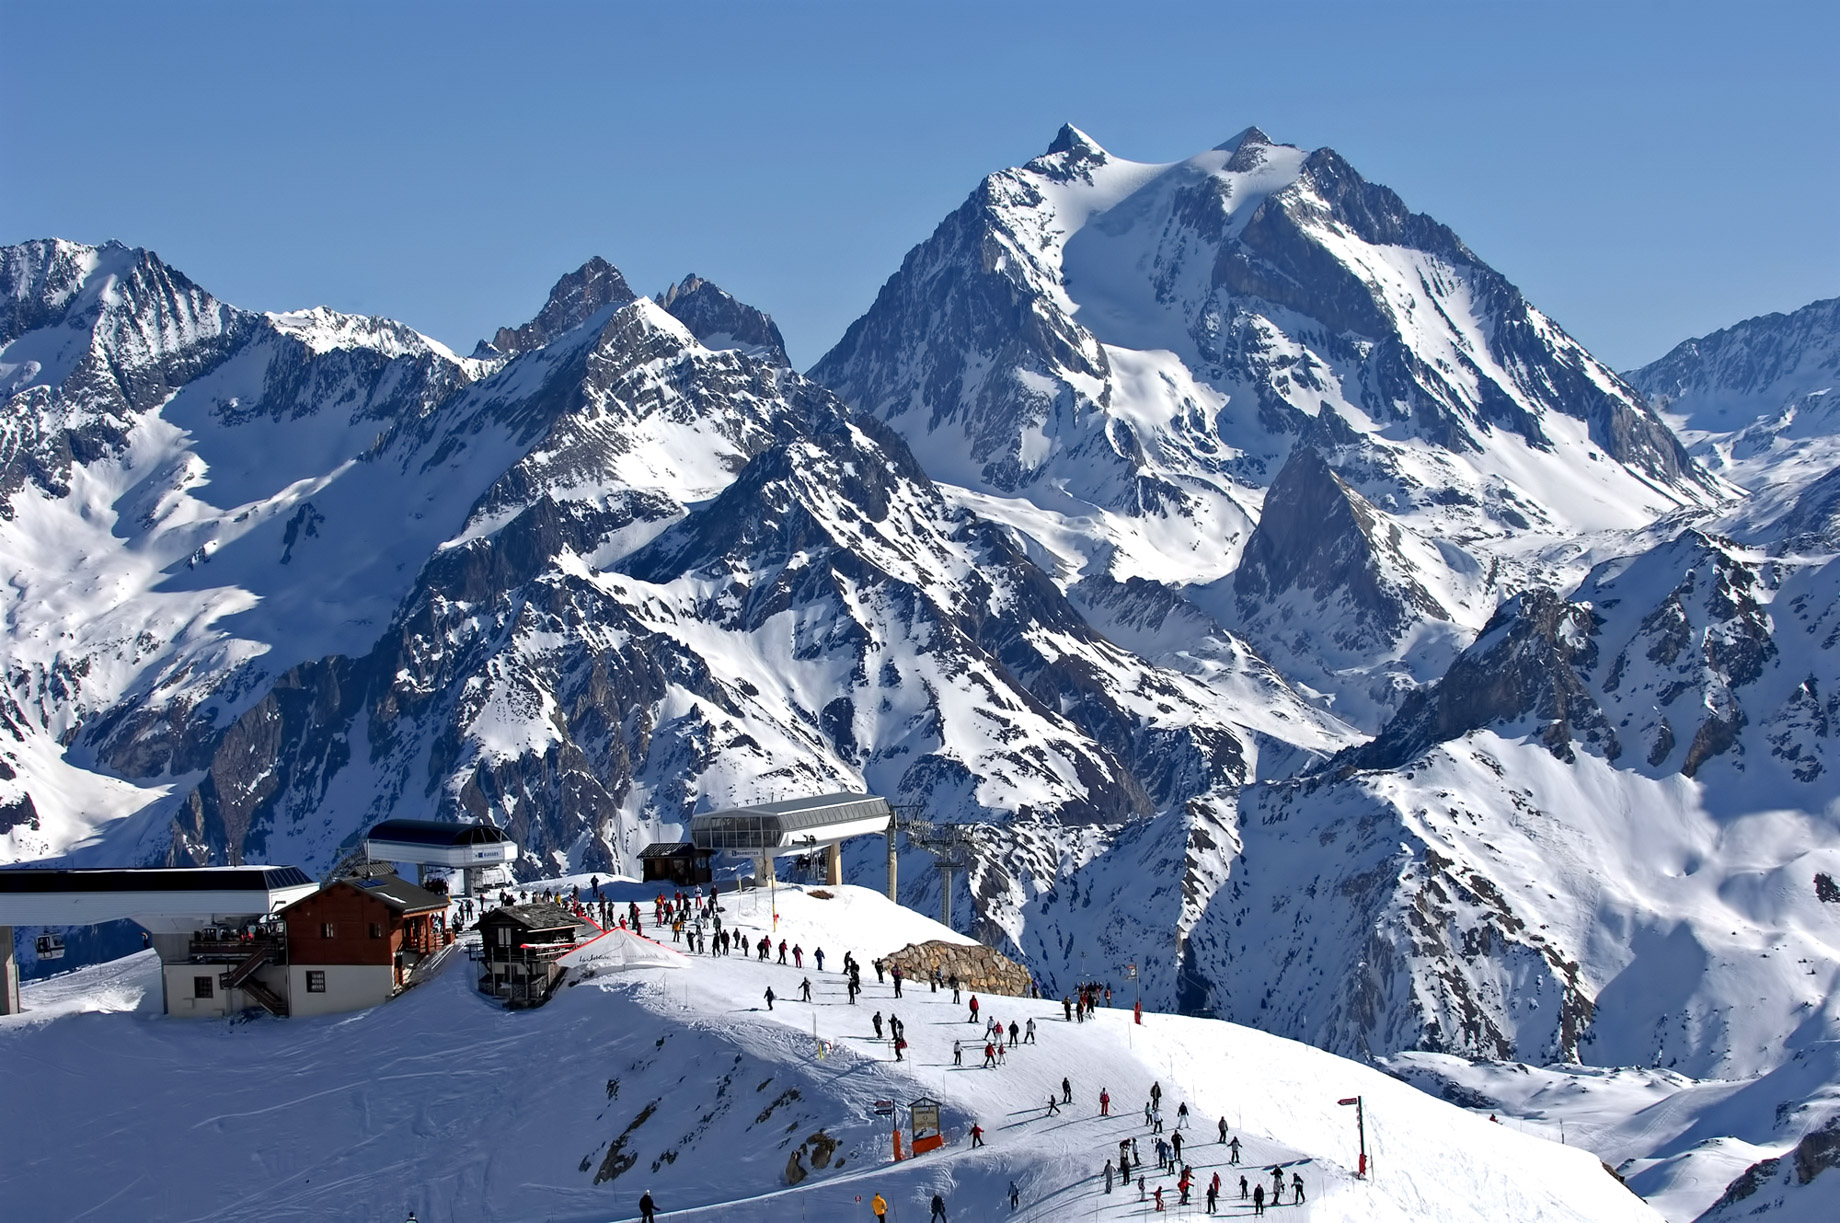 Méribel – French Alps Mountain Resort – An Exclusive Très Chic Luxury Winter Paradise